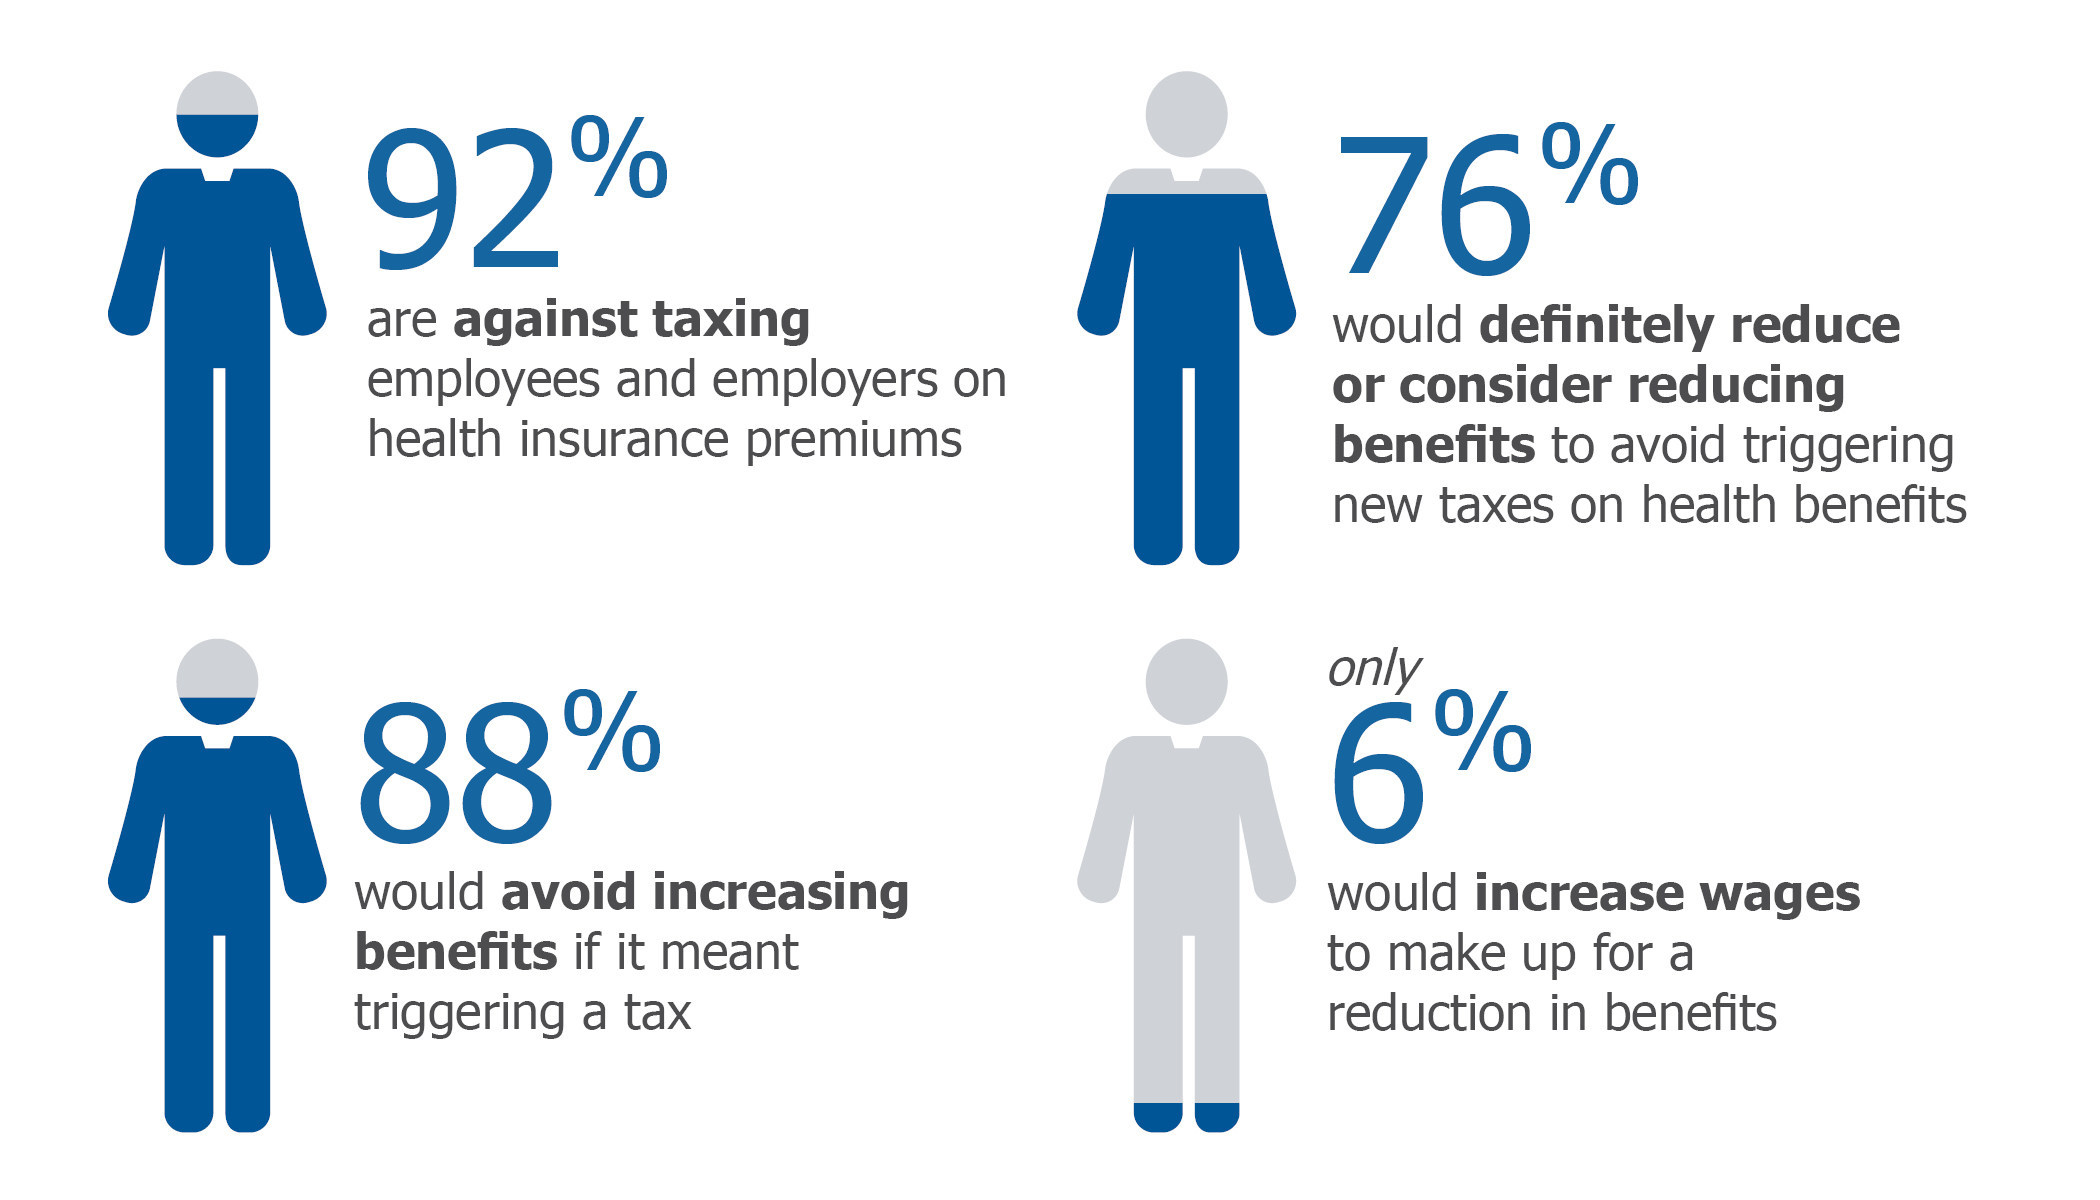 Survey shows major opposition to taxing healthcare benefits: As efforts to repeal and replace the Affordable Care Act (ACA) move through Congress, a new Lockton survey shows businesses are overwhelmingly against any policy that would tax workers, their families and employers on a portion of health plan premiums. Survey results include responses by 807 Lockton employer clients across the United States.